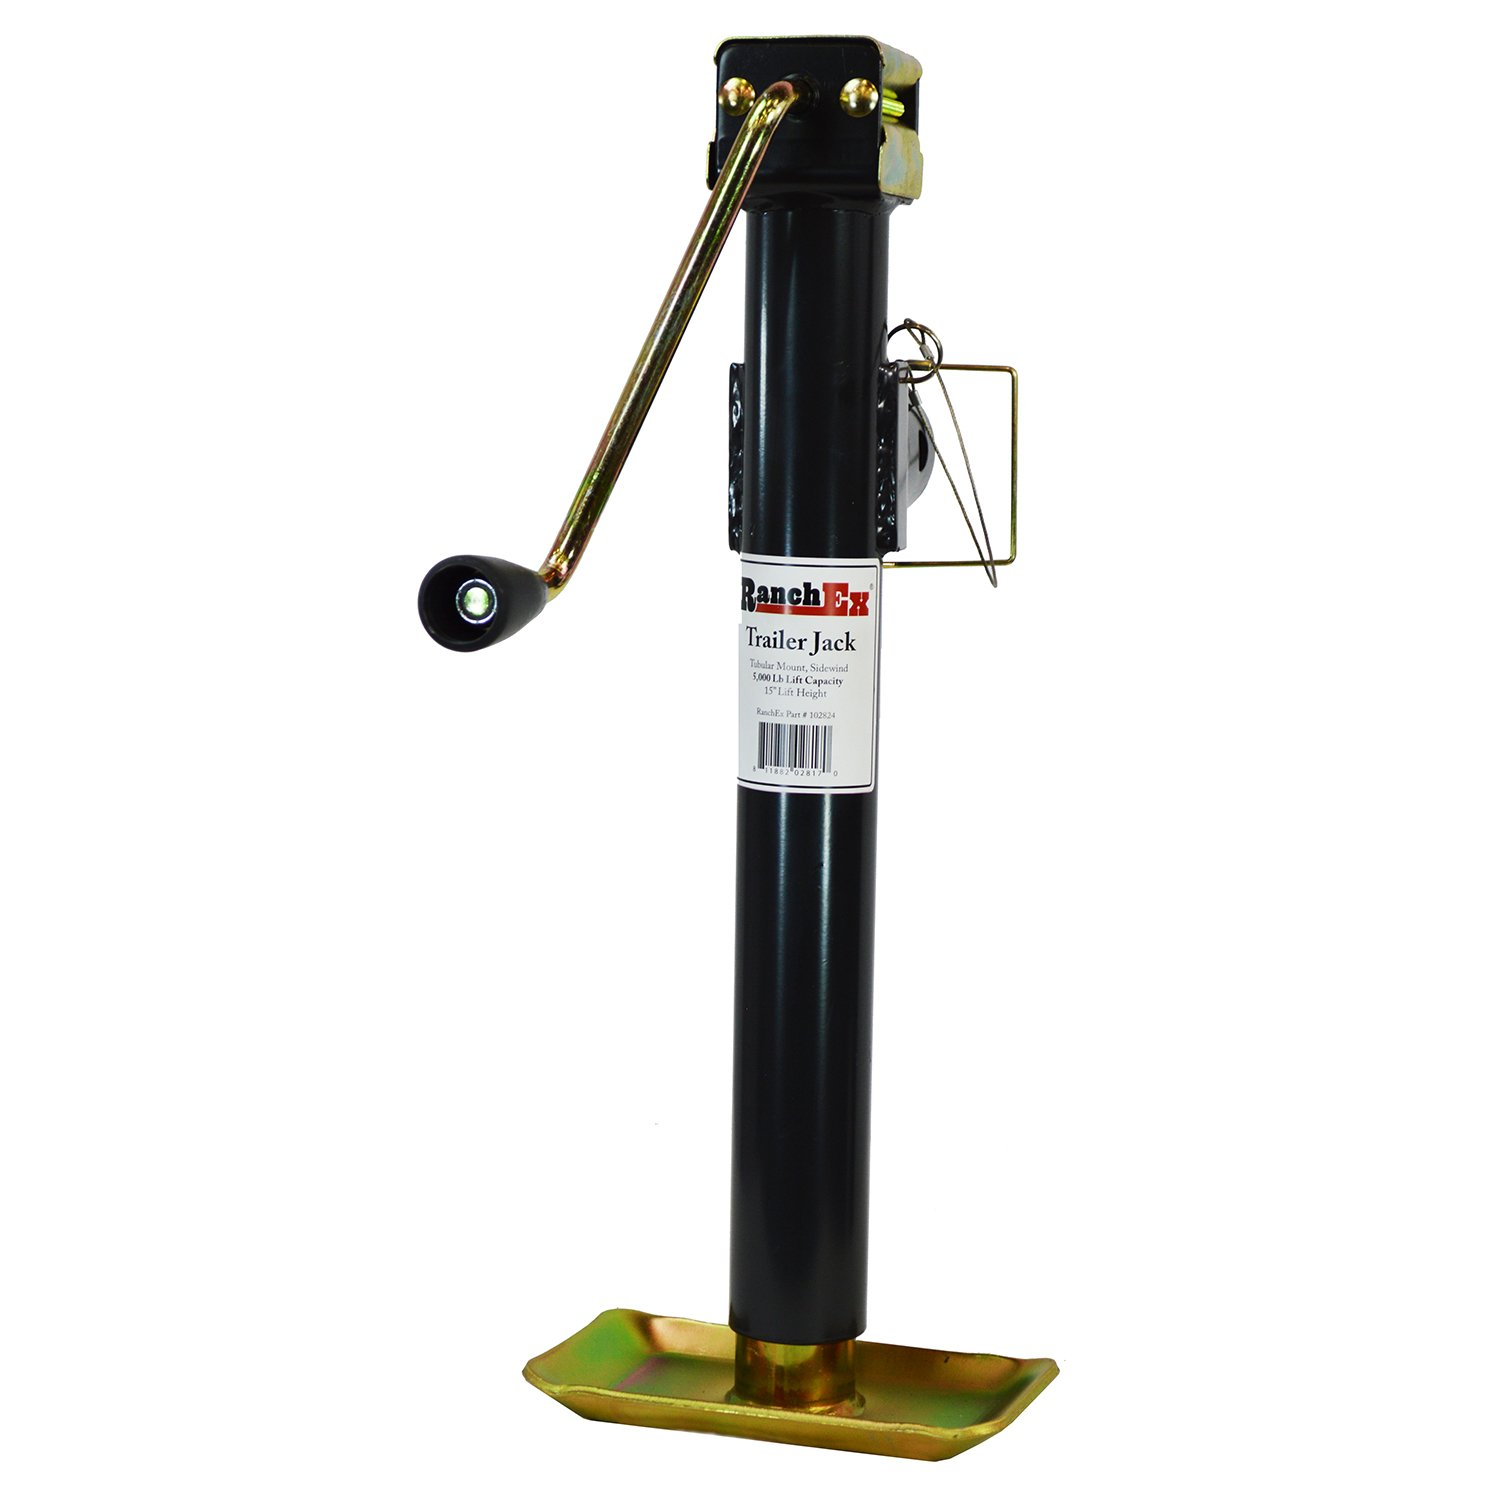 RanchEx 102824 Trailer Jack - Tubular Mount Side Wind 5,000 lb Lift Capacity 15'' Lift Height